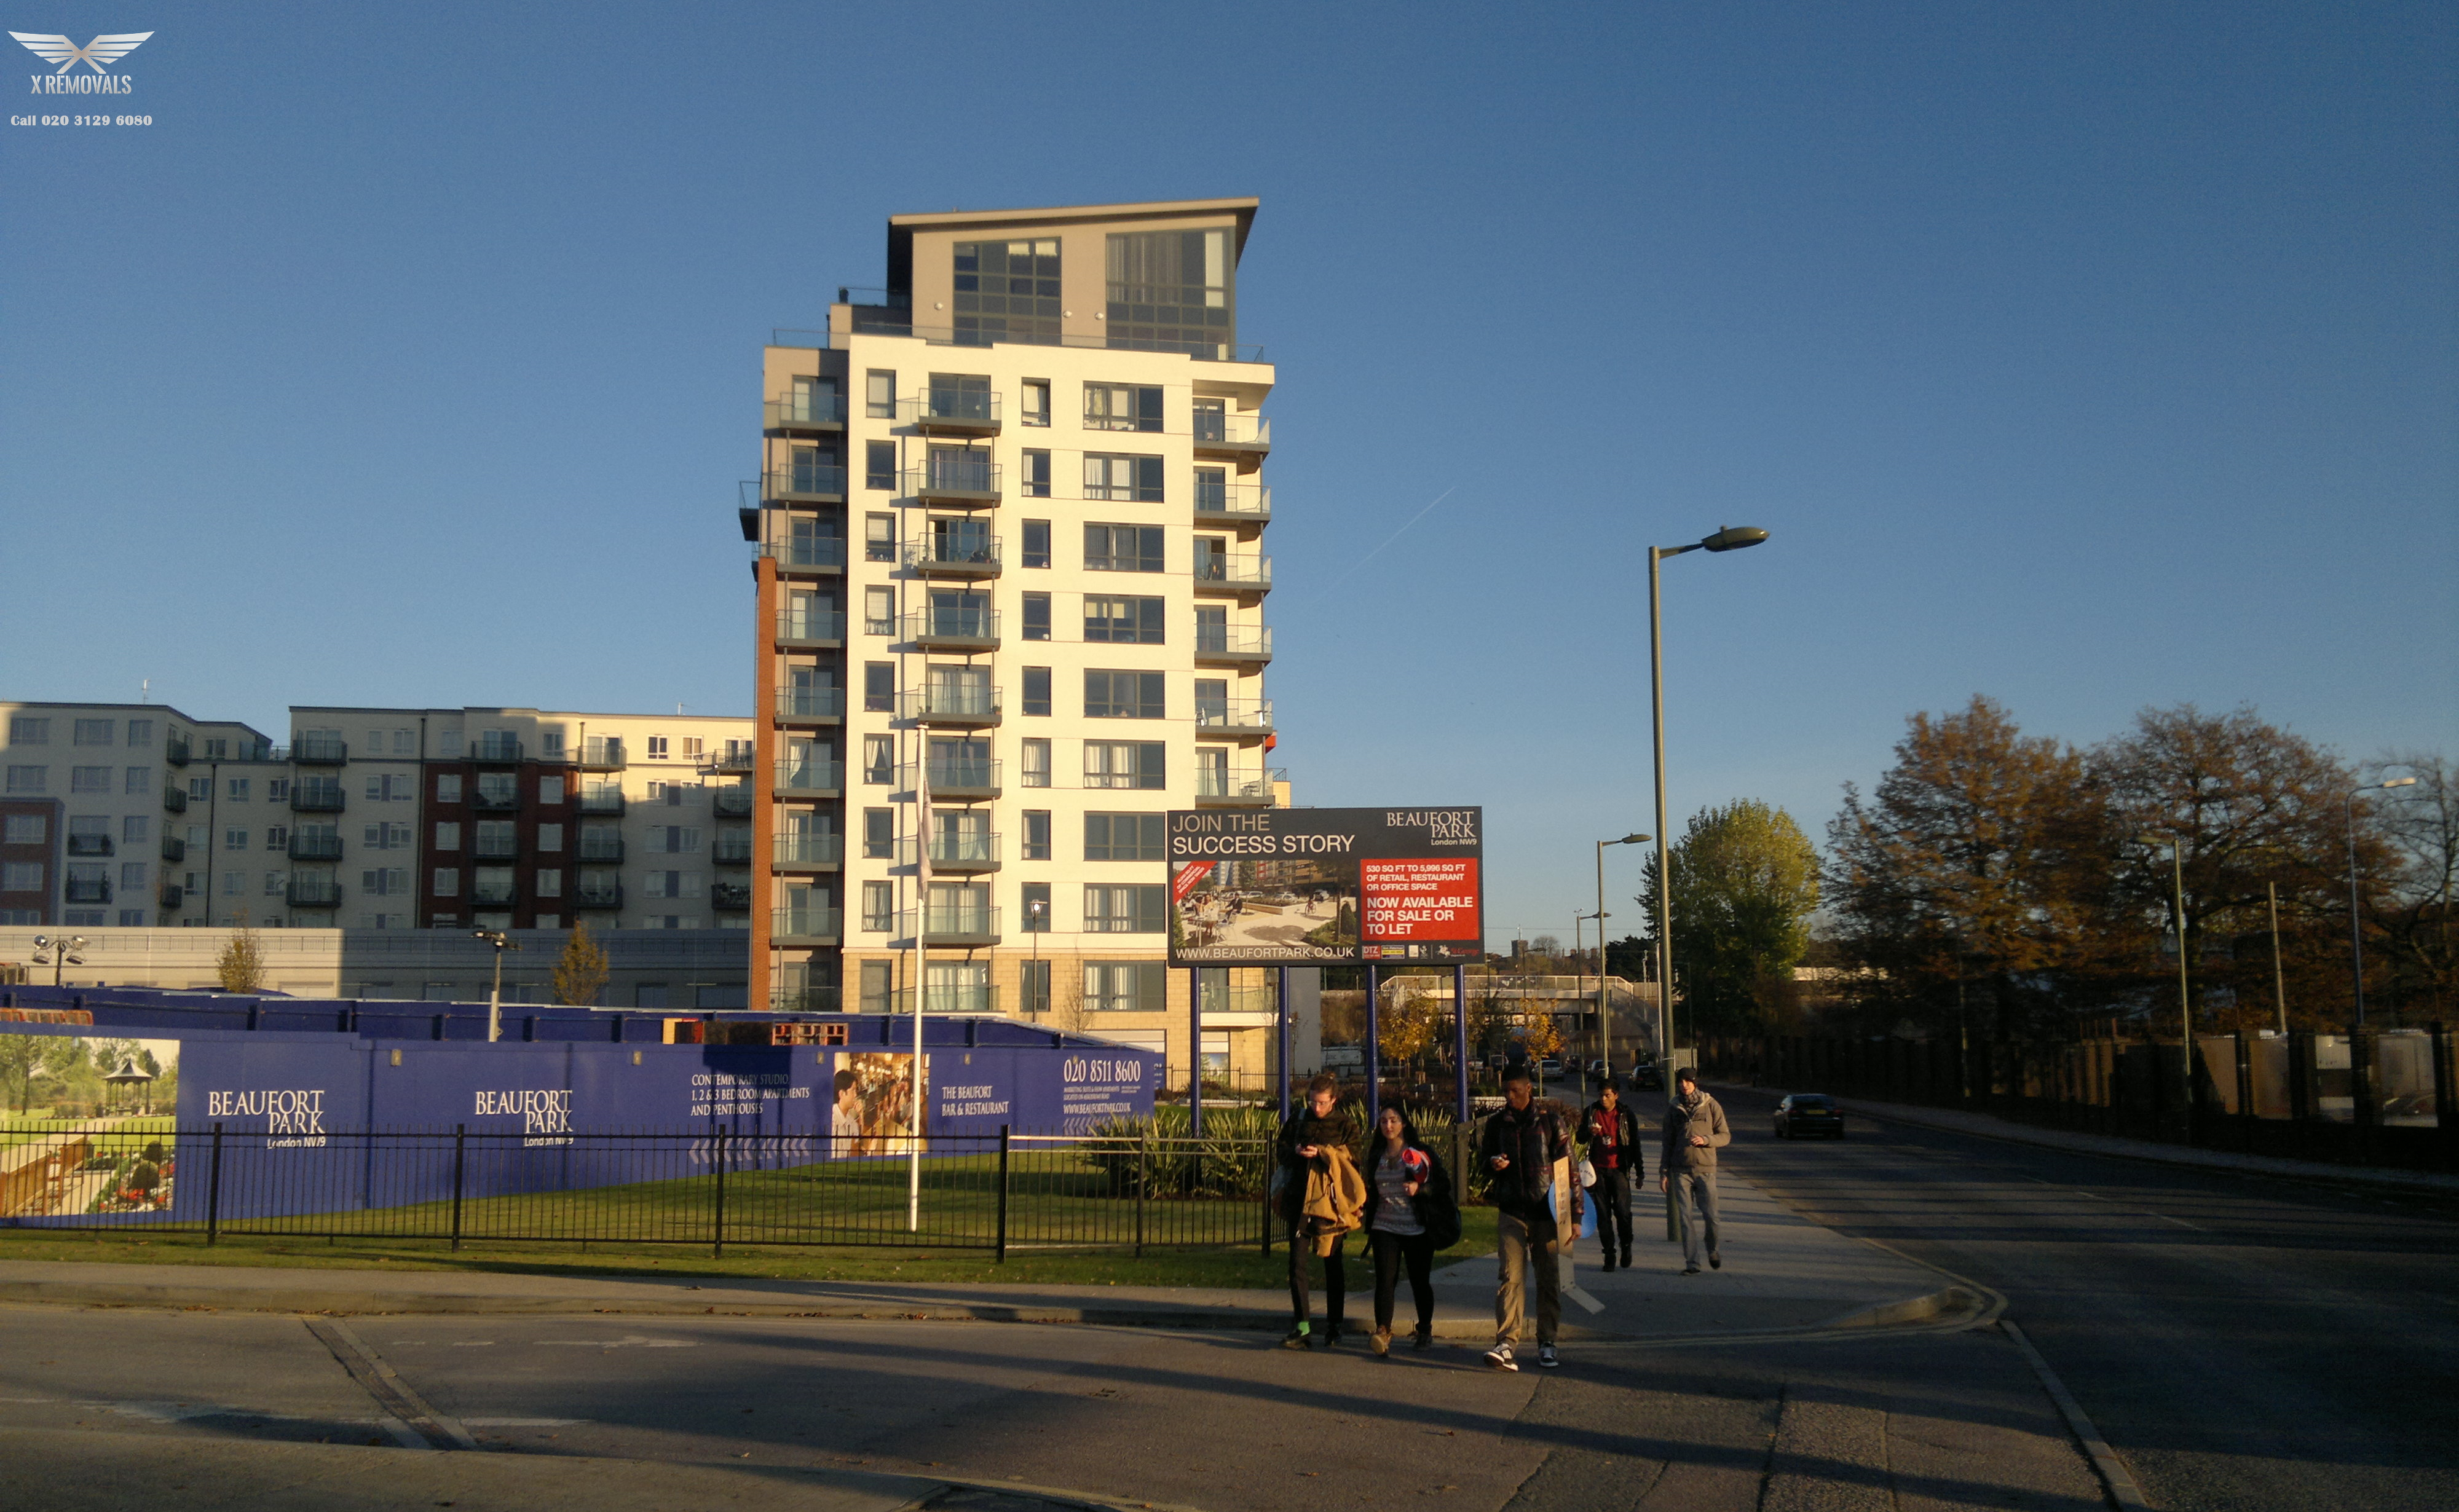 NW9 Colindale